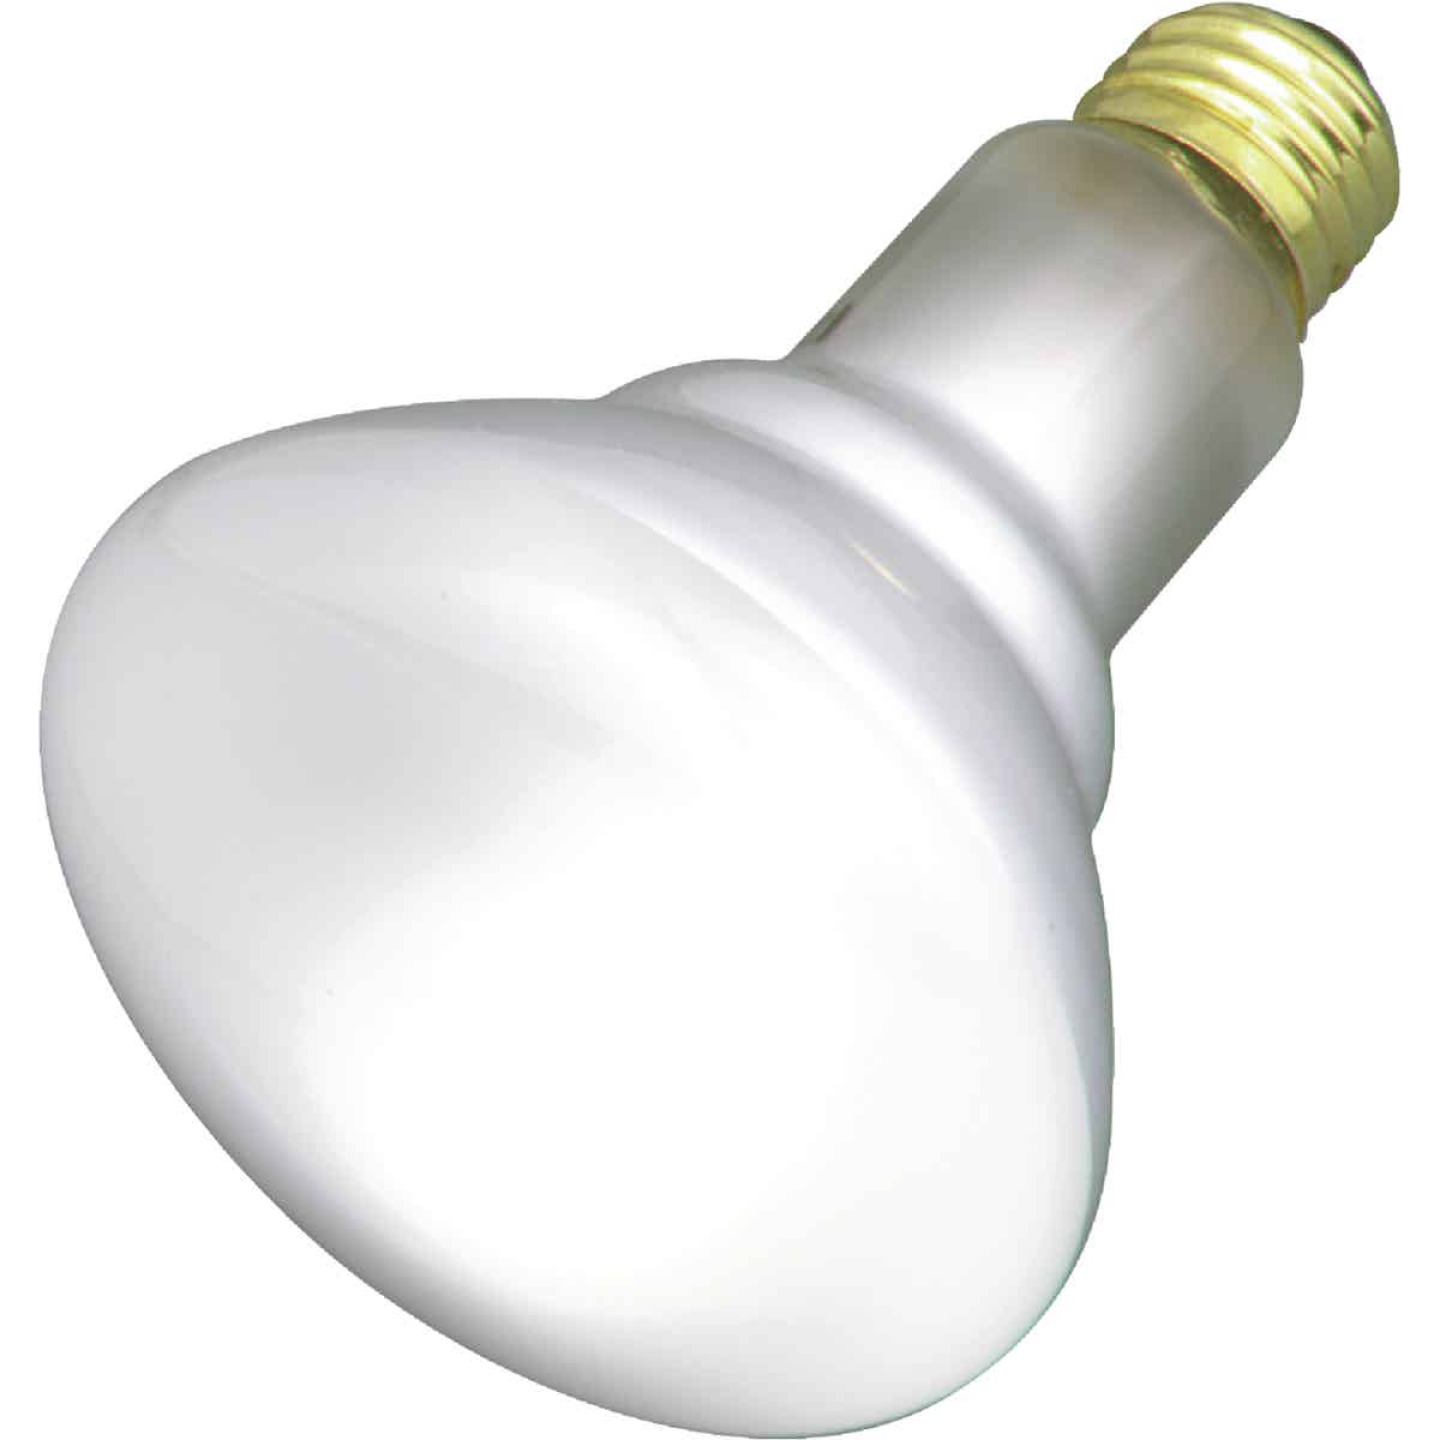 Satco 65W Frosted Medium Base BR30 Reflector Incandescent Floodlight Light Bulb (2-Pack) Image 1